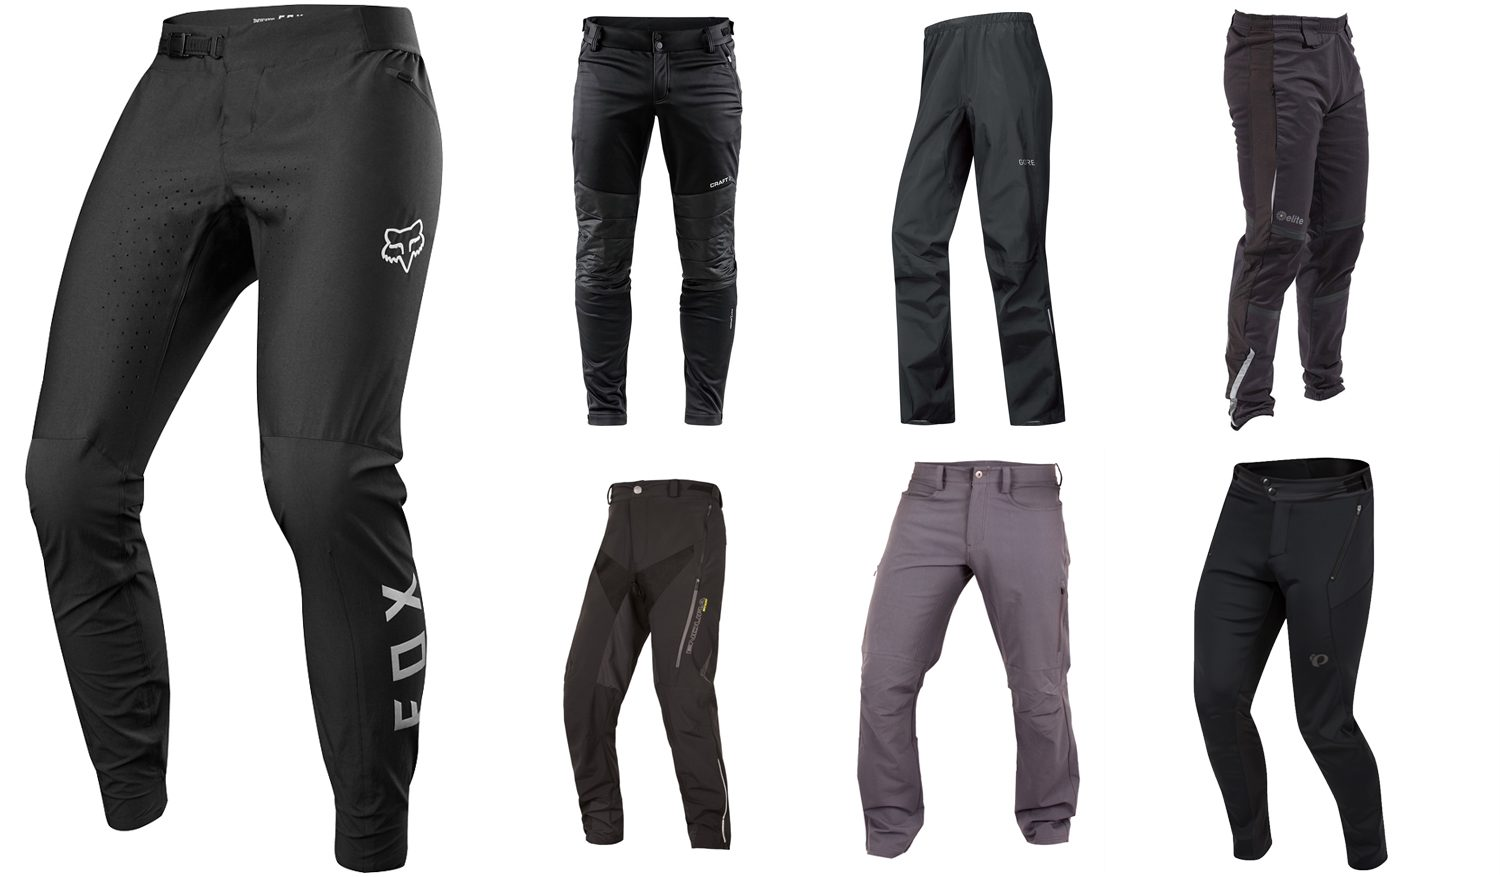 Winter is Coming: Pant Options for Wet and Cold Winter Riding